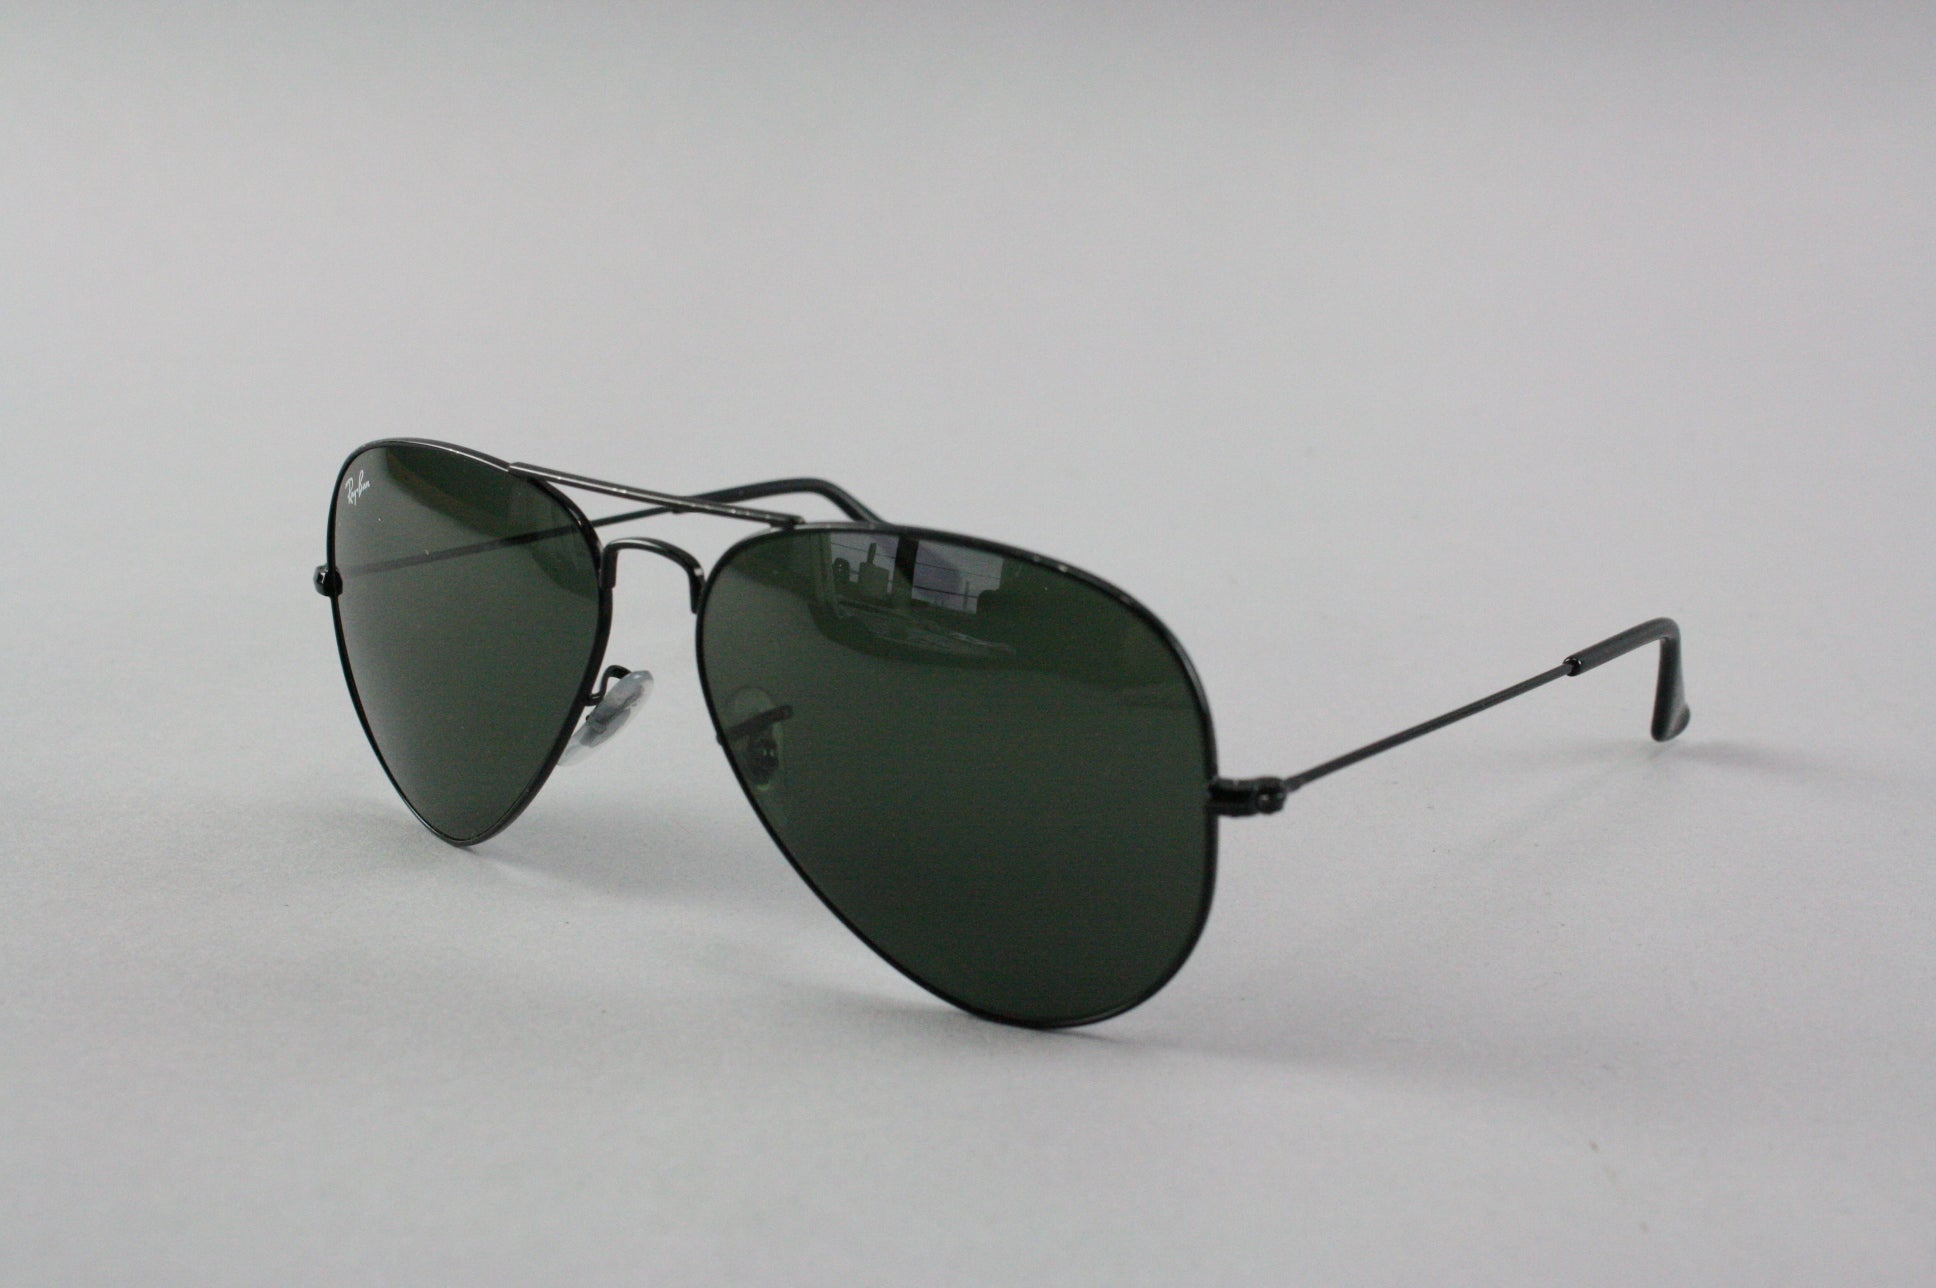 Ray-Ban Aviator Sunglasses RB3025 w/ Black Case